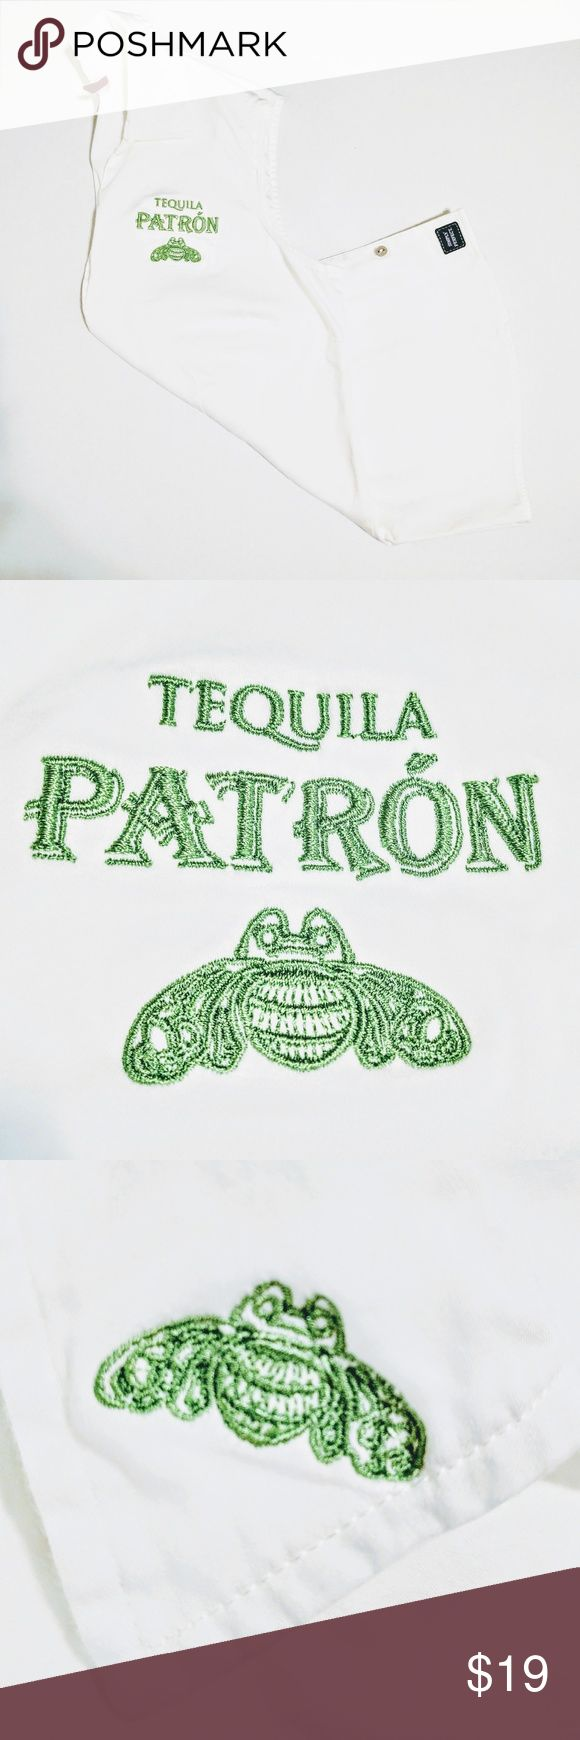 "🐝 sleeveless blouse w/Patron Tequila emblem * Size Medium * Sleeveless Collared Button Up Shirt / Blouse * White w / Green Embroidery Bumble Bee + "" Tequila Patron "" * Slimming Silhouette w / Darting * Front Button Closure * Small Patch at Bottom of Shirt "" Simply Perfect "" * 100% Cotton * NEW - FLAWLESS  * Spring * Summer * Tank * Top * Golf * Preppy Tops"